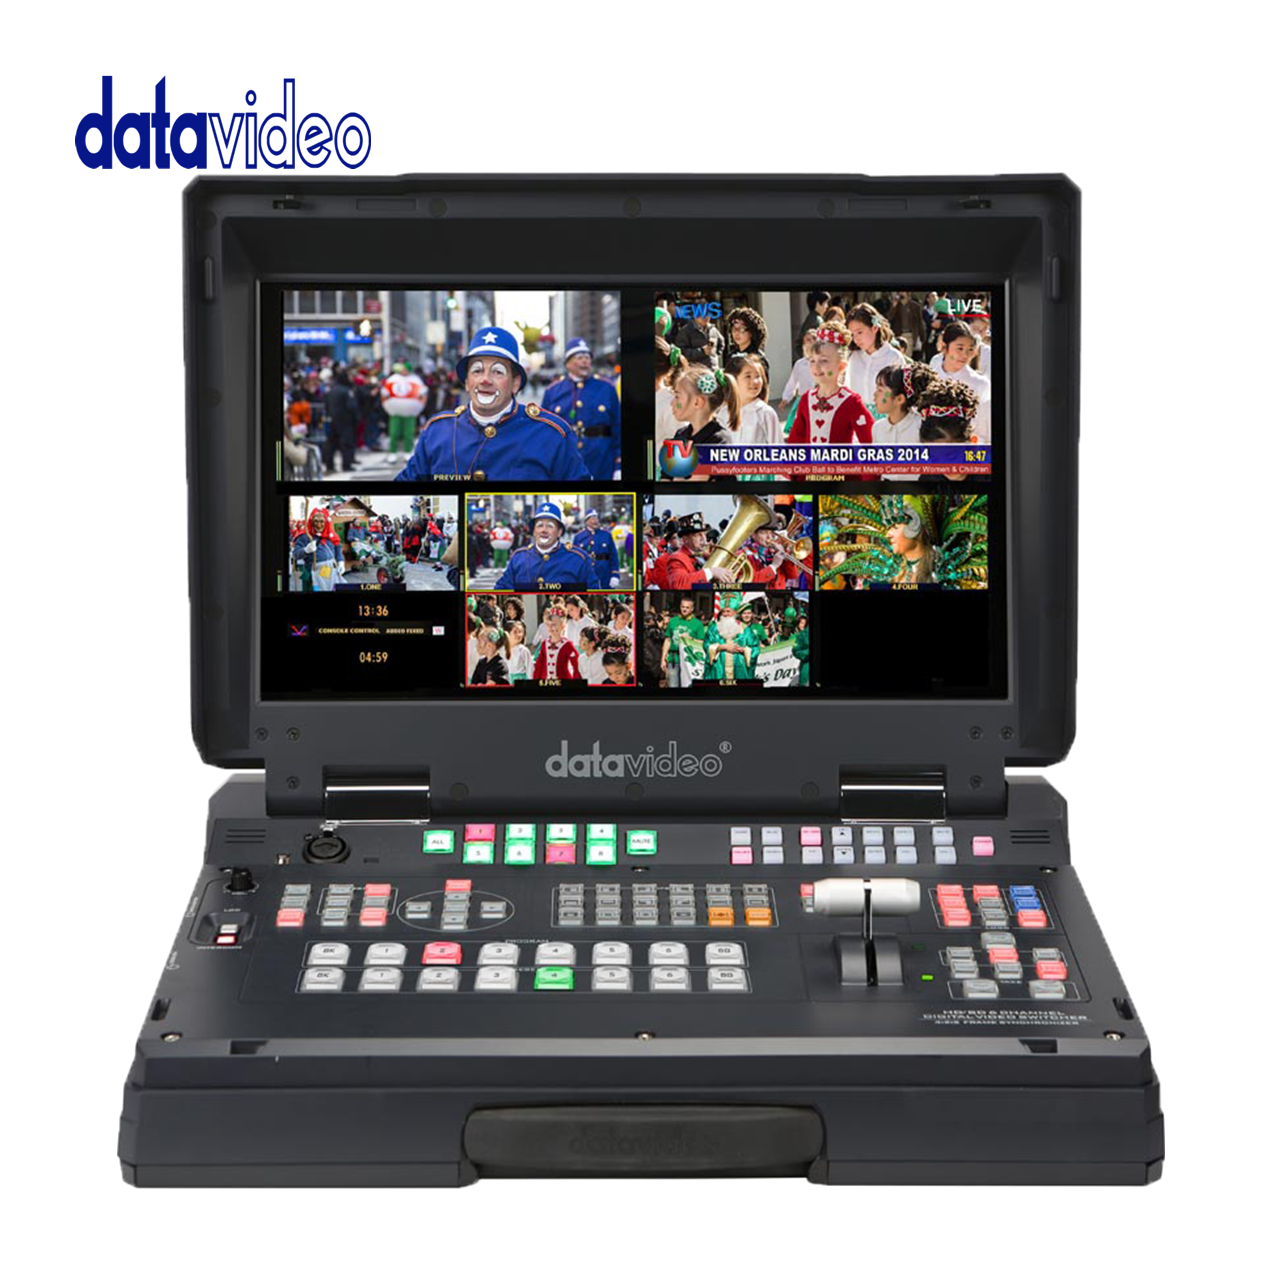 Datavideo HS-2200 HD 6-Channel Portable Mobile Cast Video Studio. Pro Video Data Video